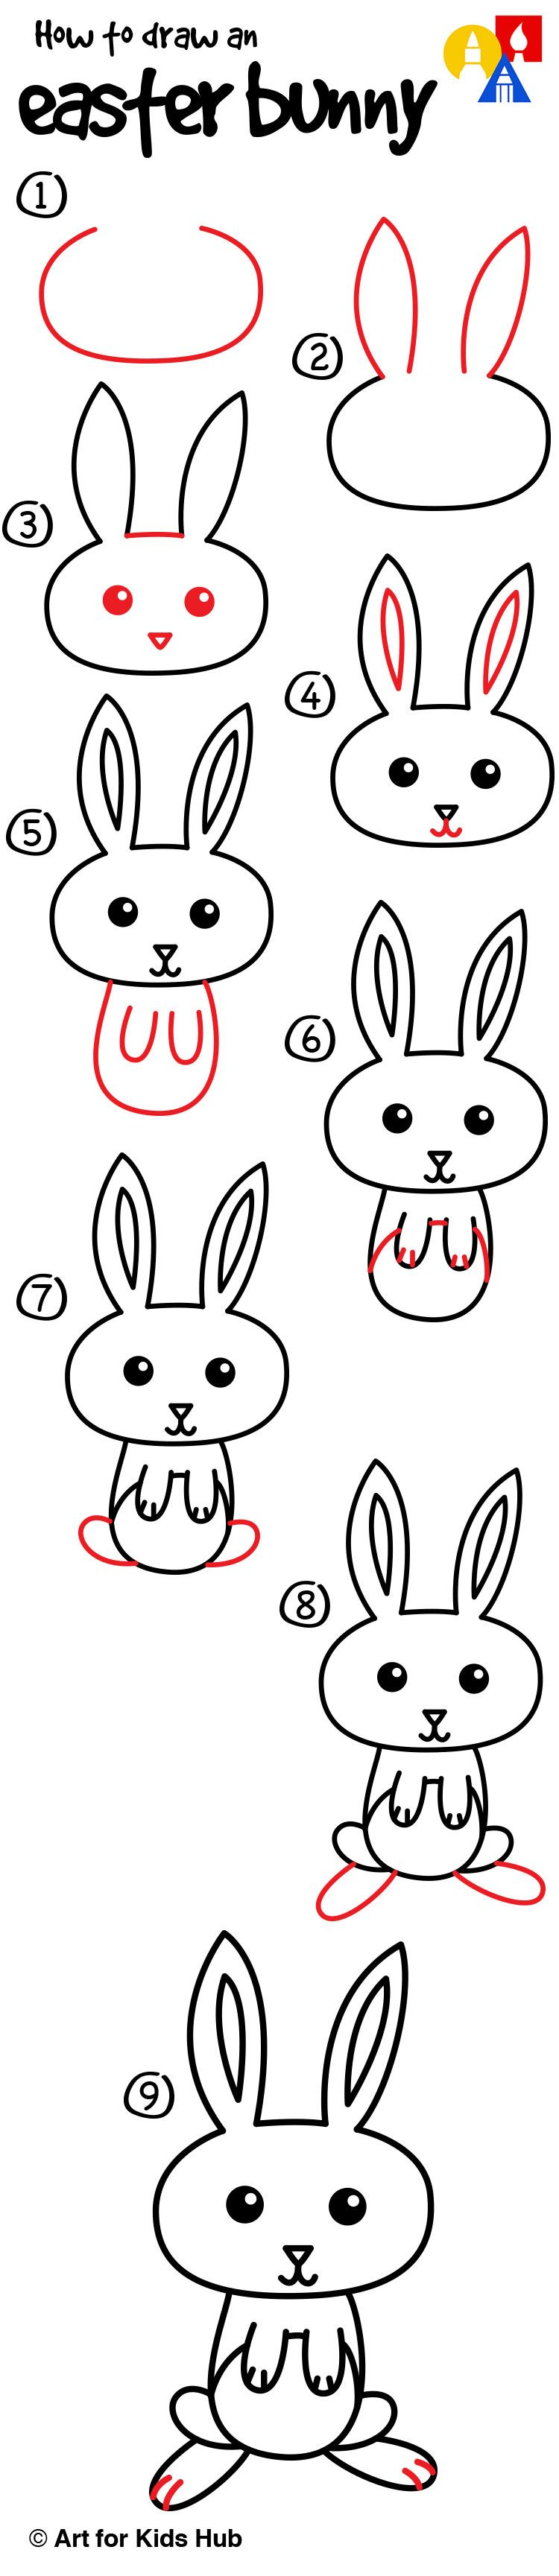 How To Draw A Cartoon Easter Bunny Art For Kids Hub Afkh Step